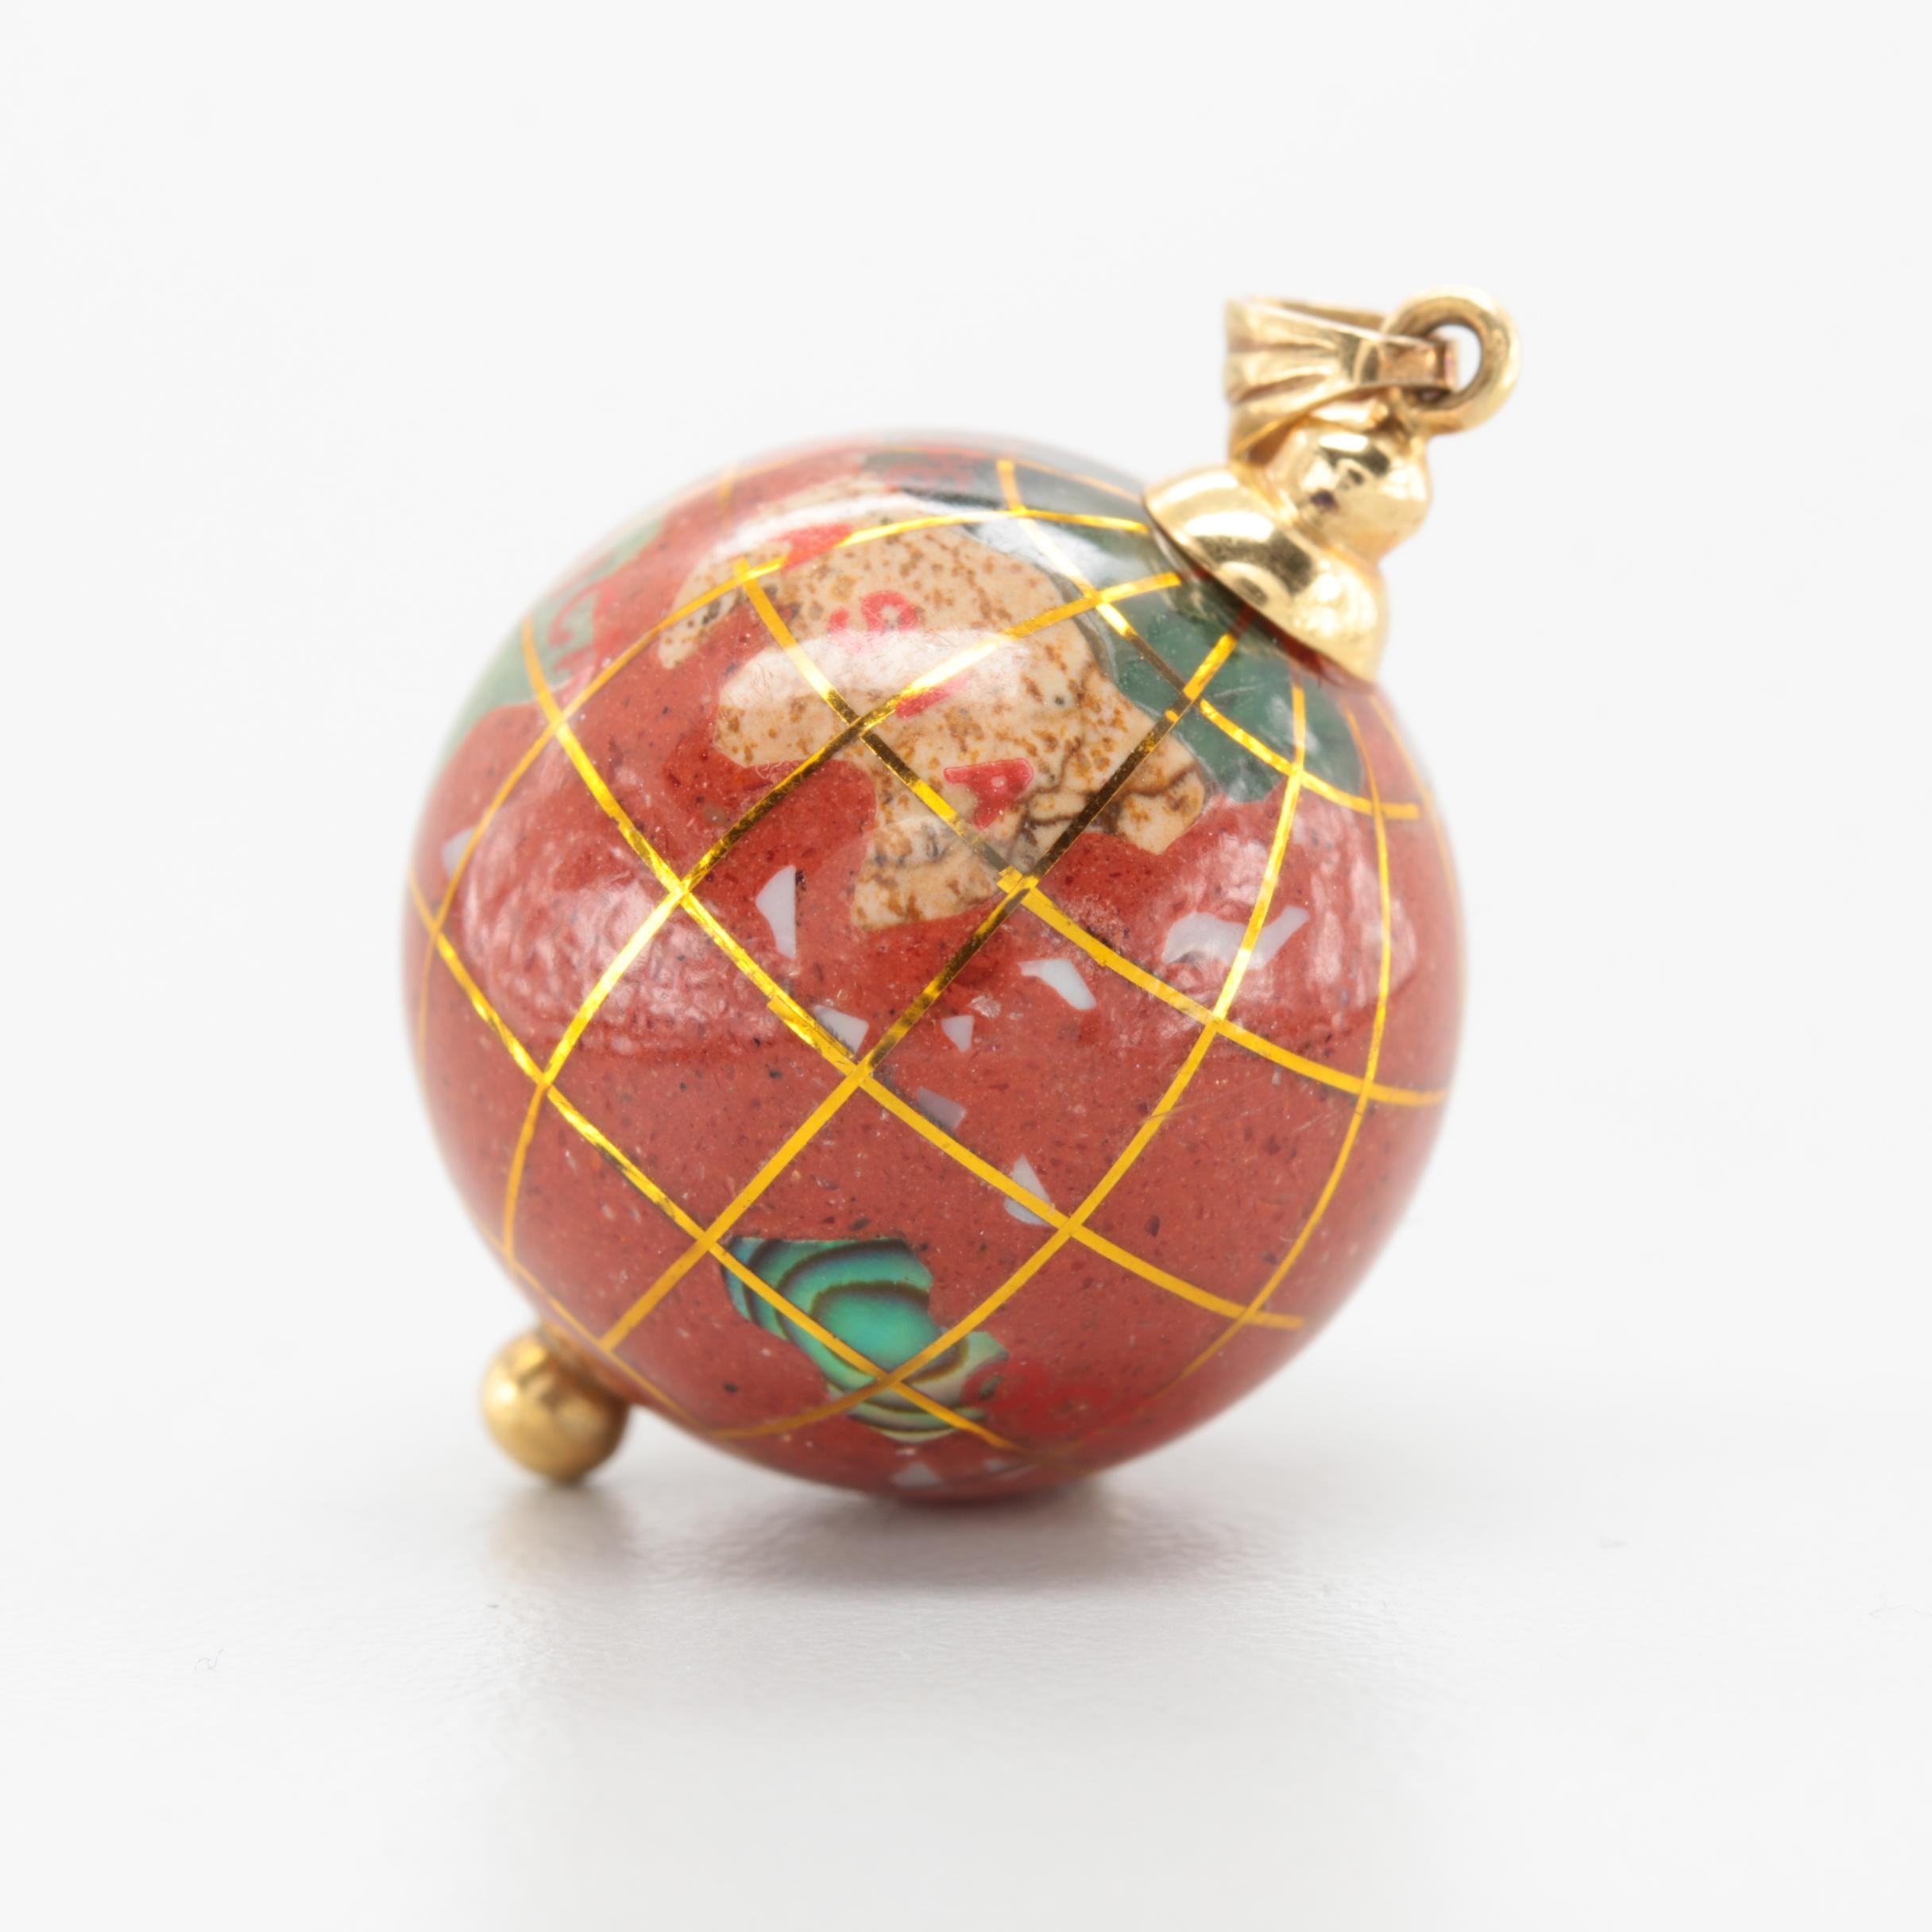 14K Yellow Gold Globe Pendant Featuring Jasper, Serpentine and Abalone